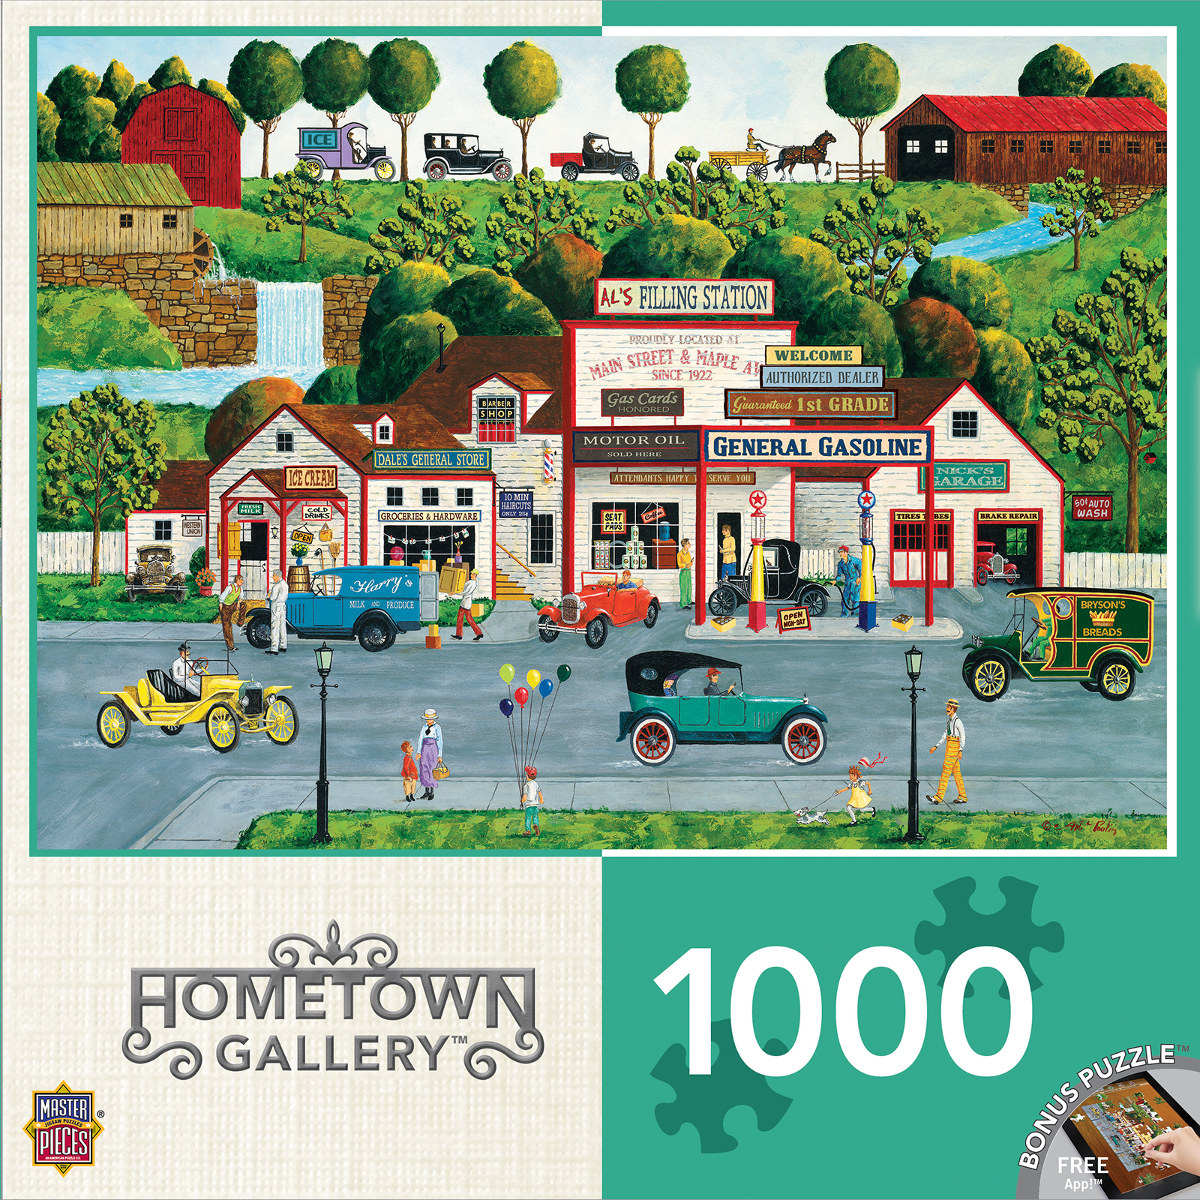 The Old Filling Station (Hometown Gallery) Landscape Jigsaw Puzzle